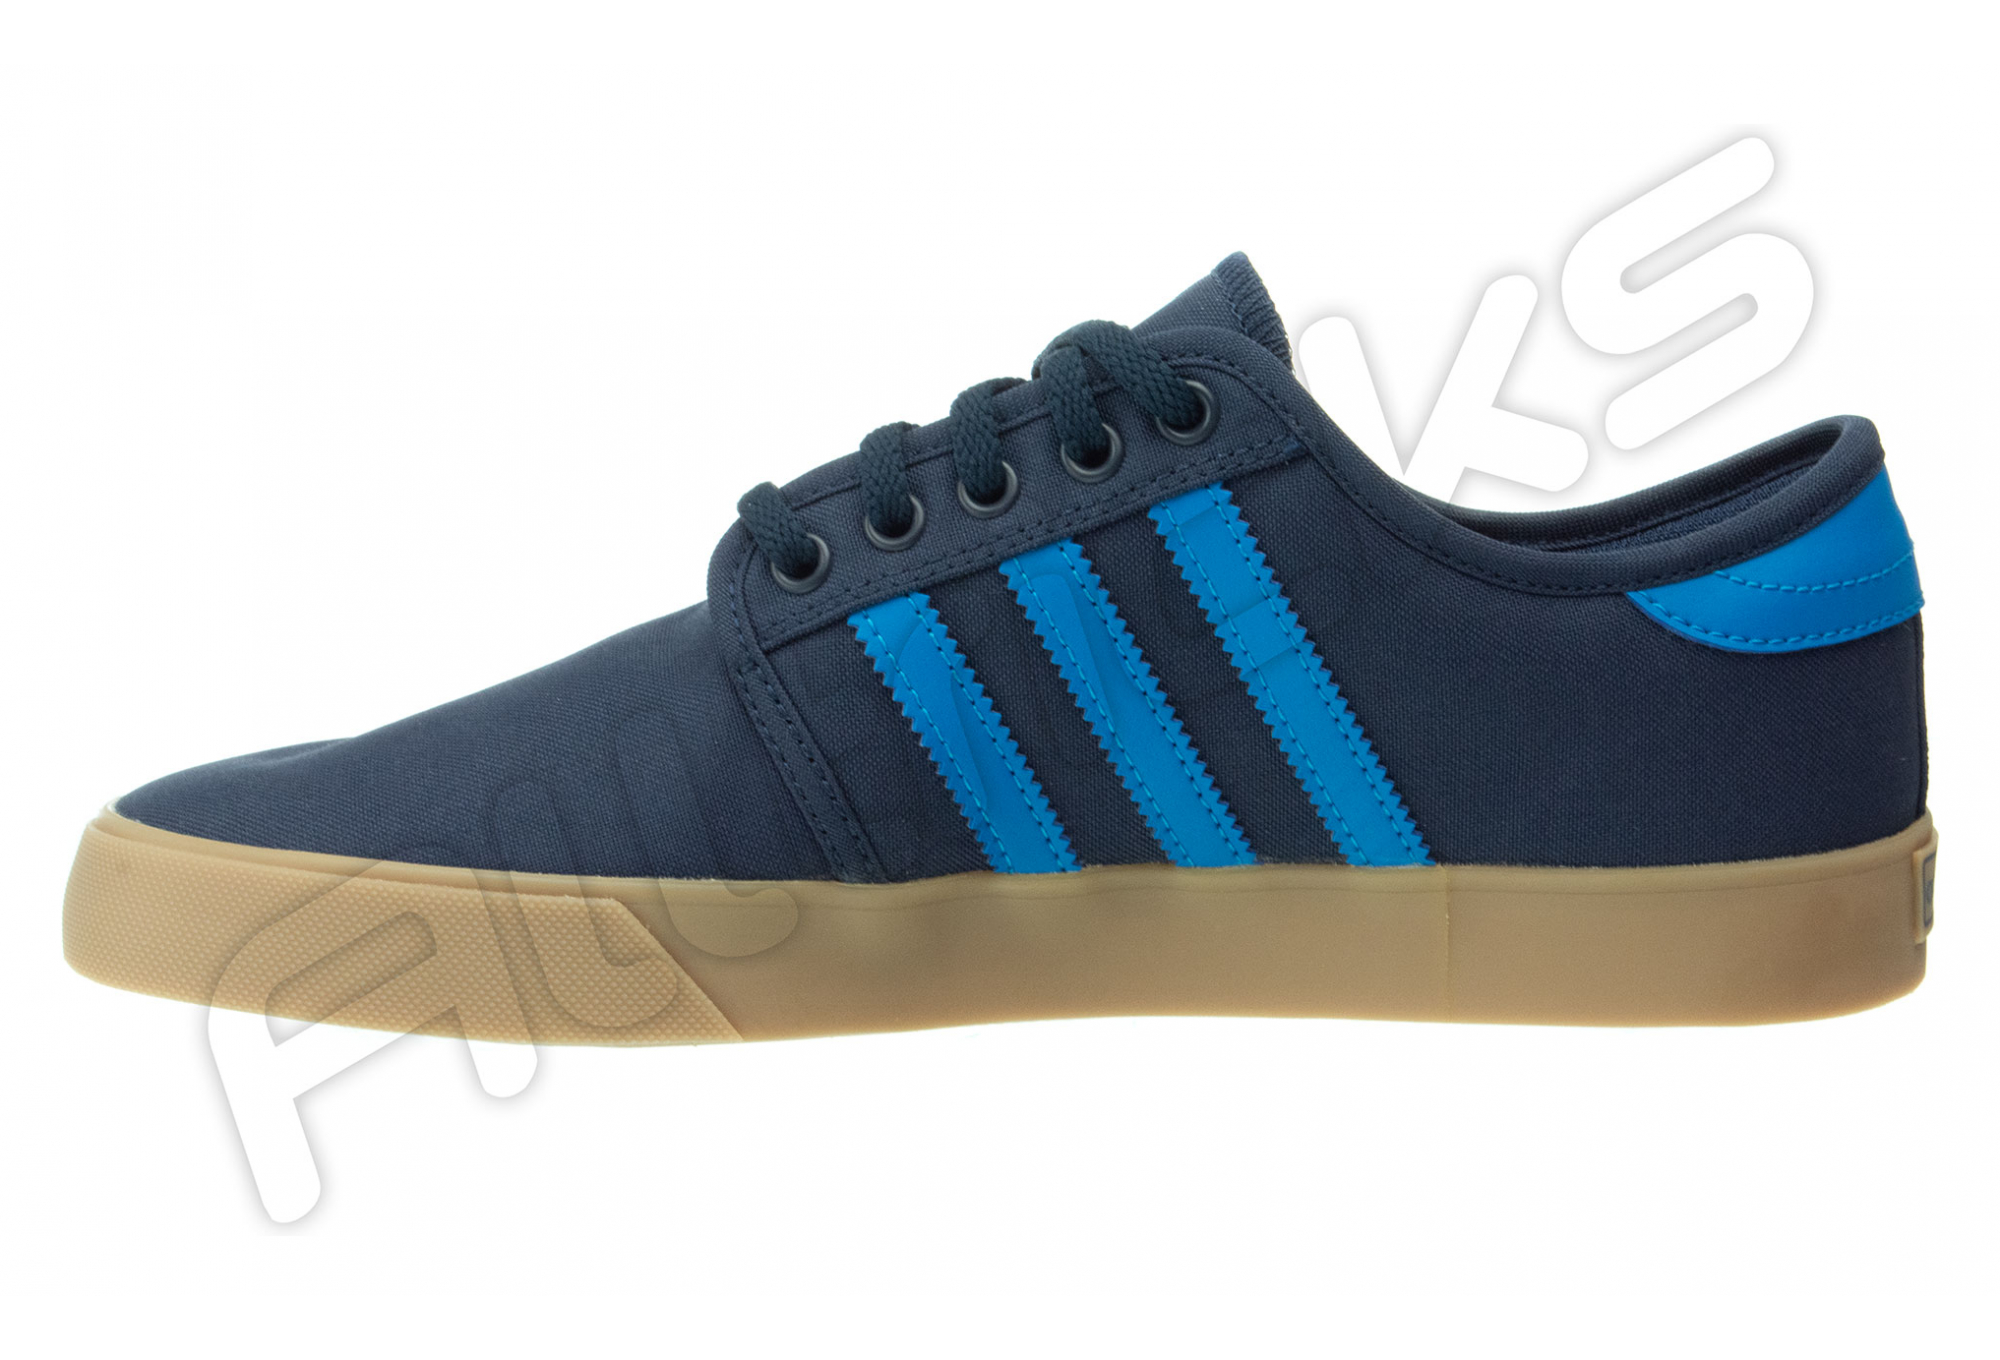 adidas originals seeley chaussures de skate couleur blue